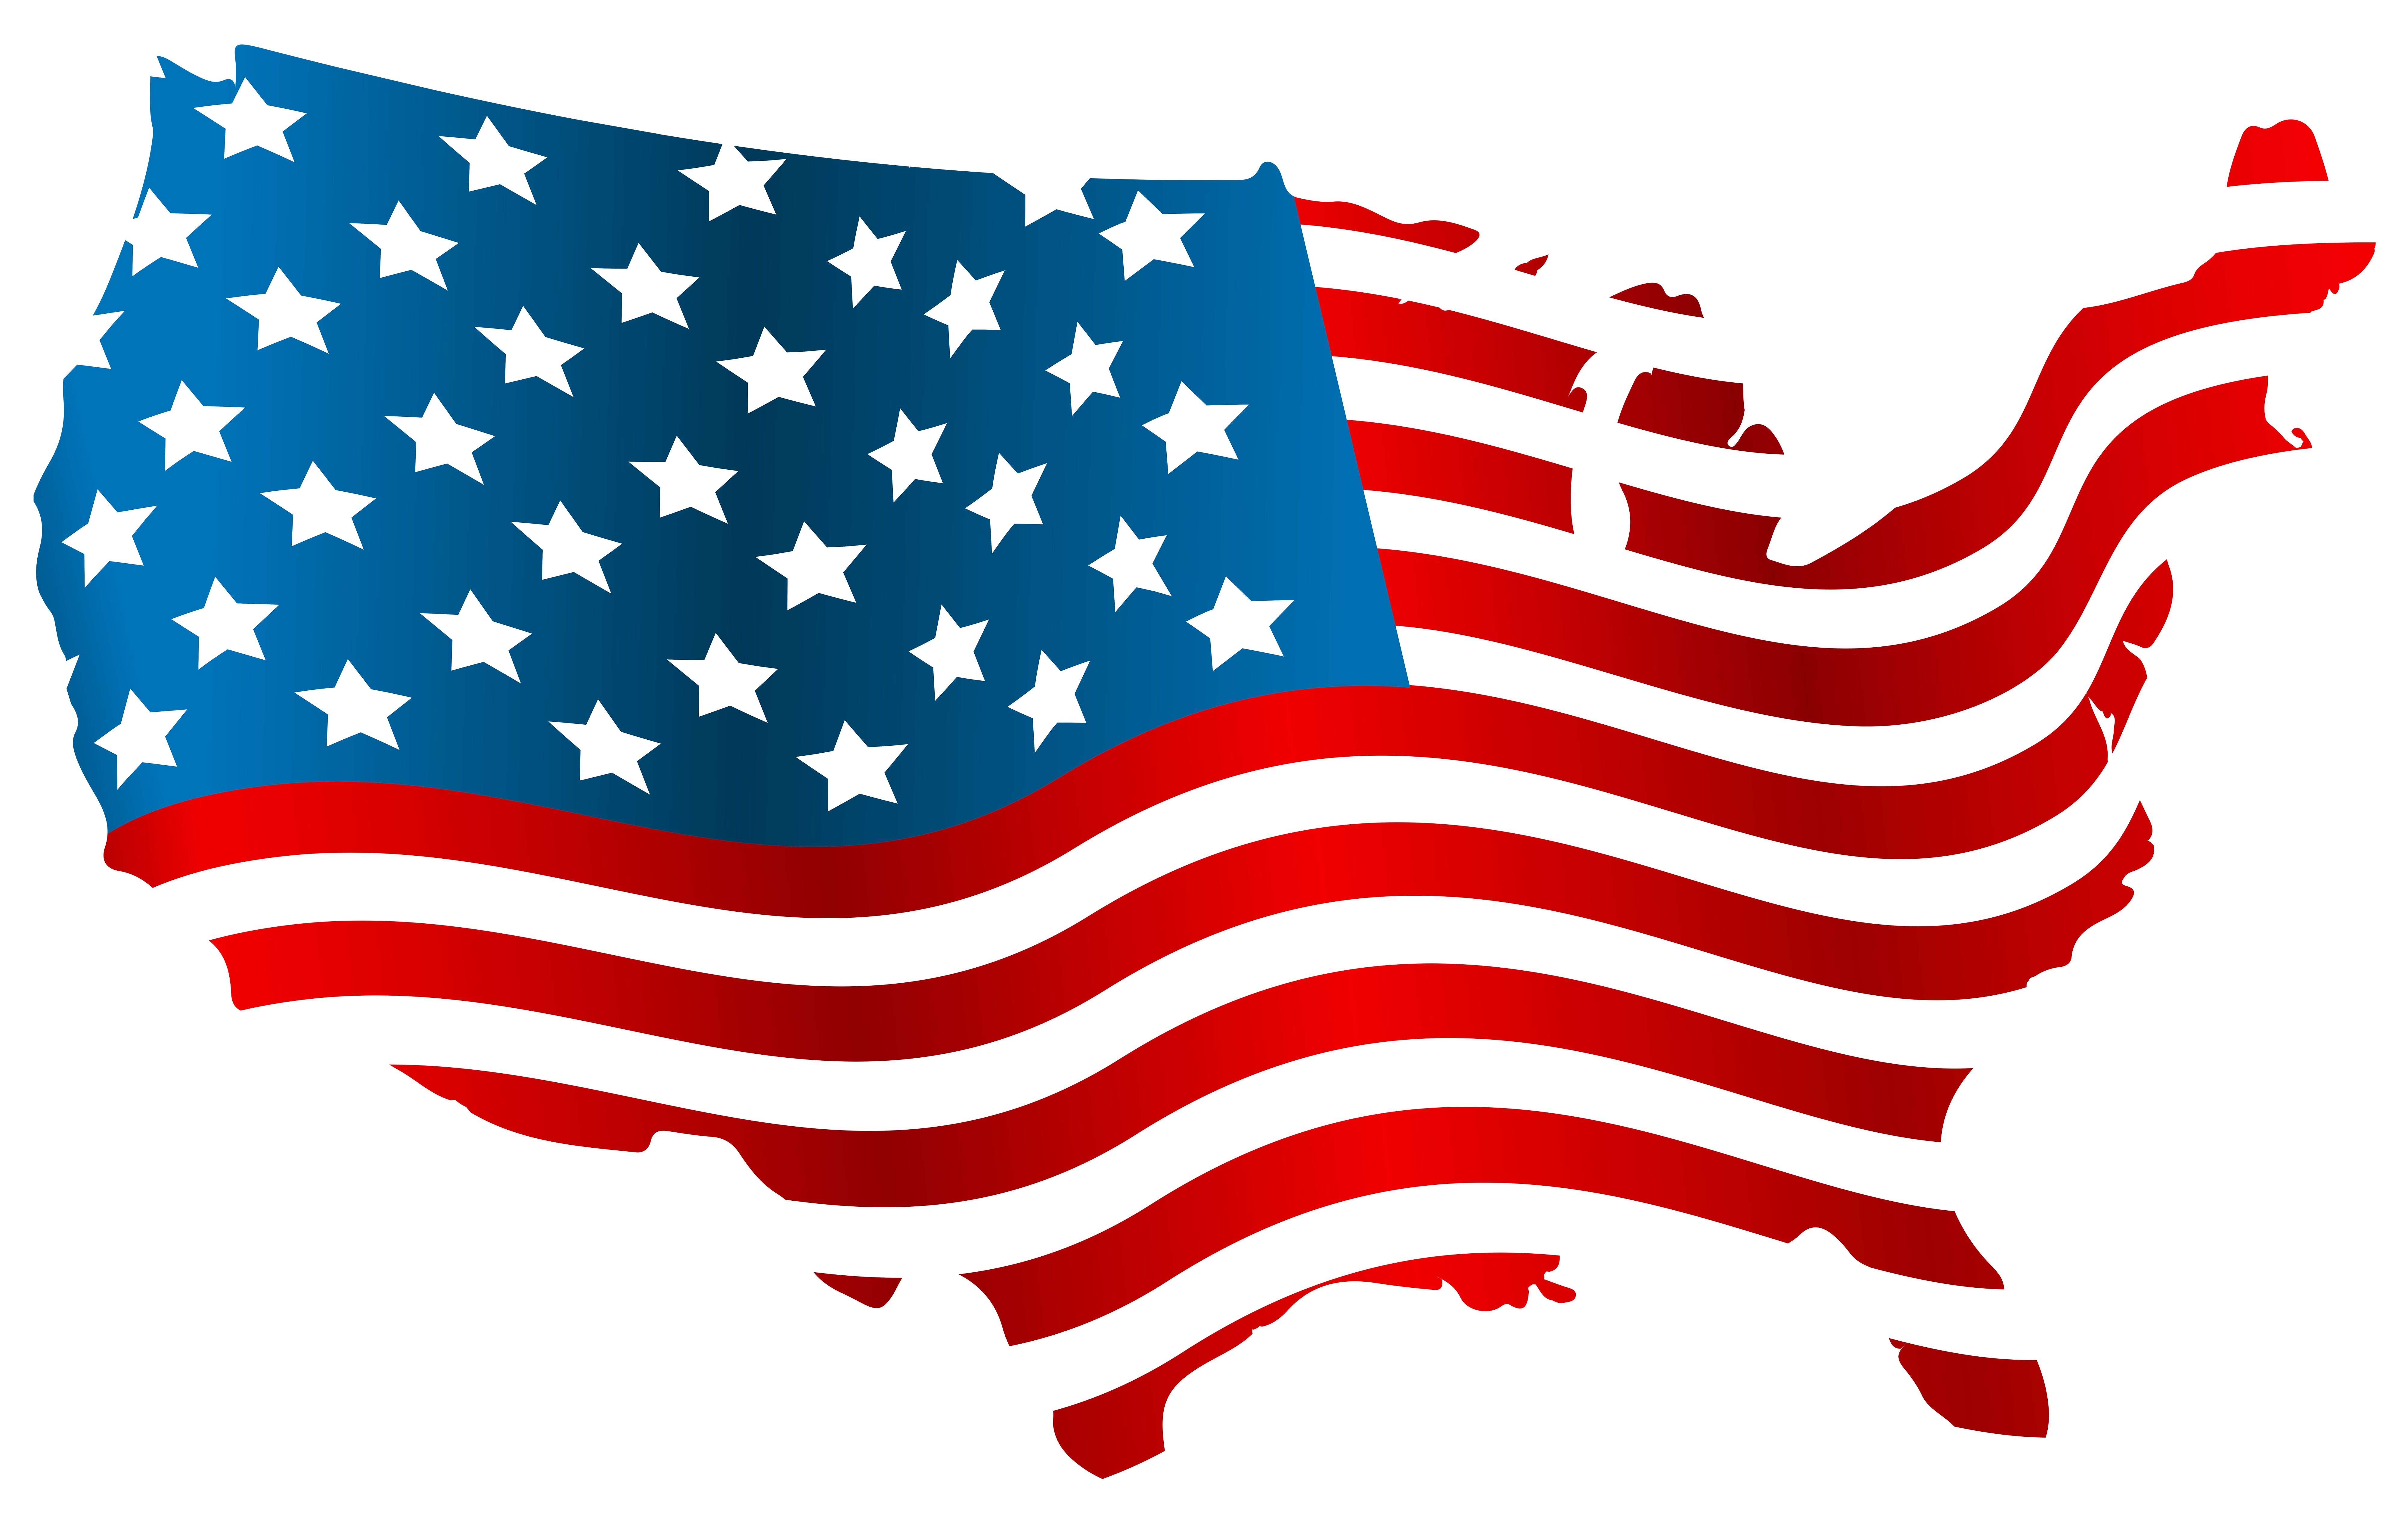 American Flag Clipart Images | Free download best American ...